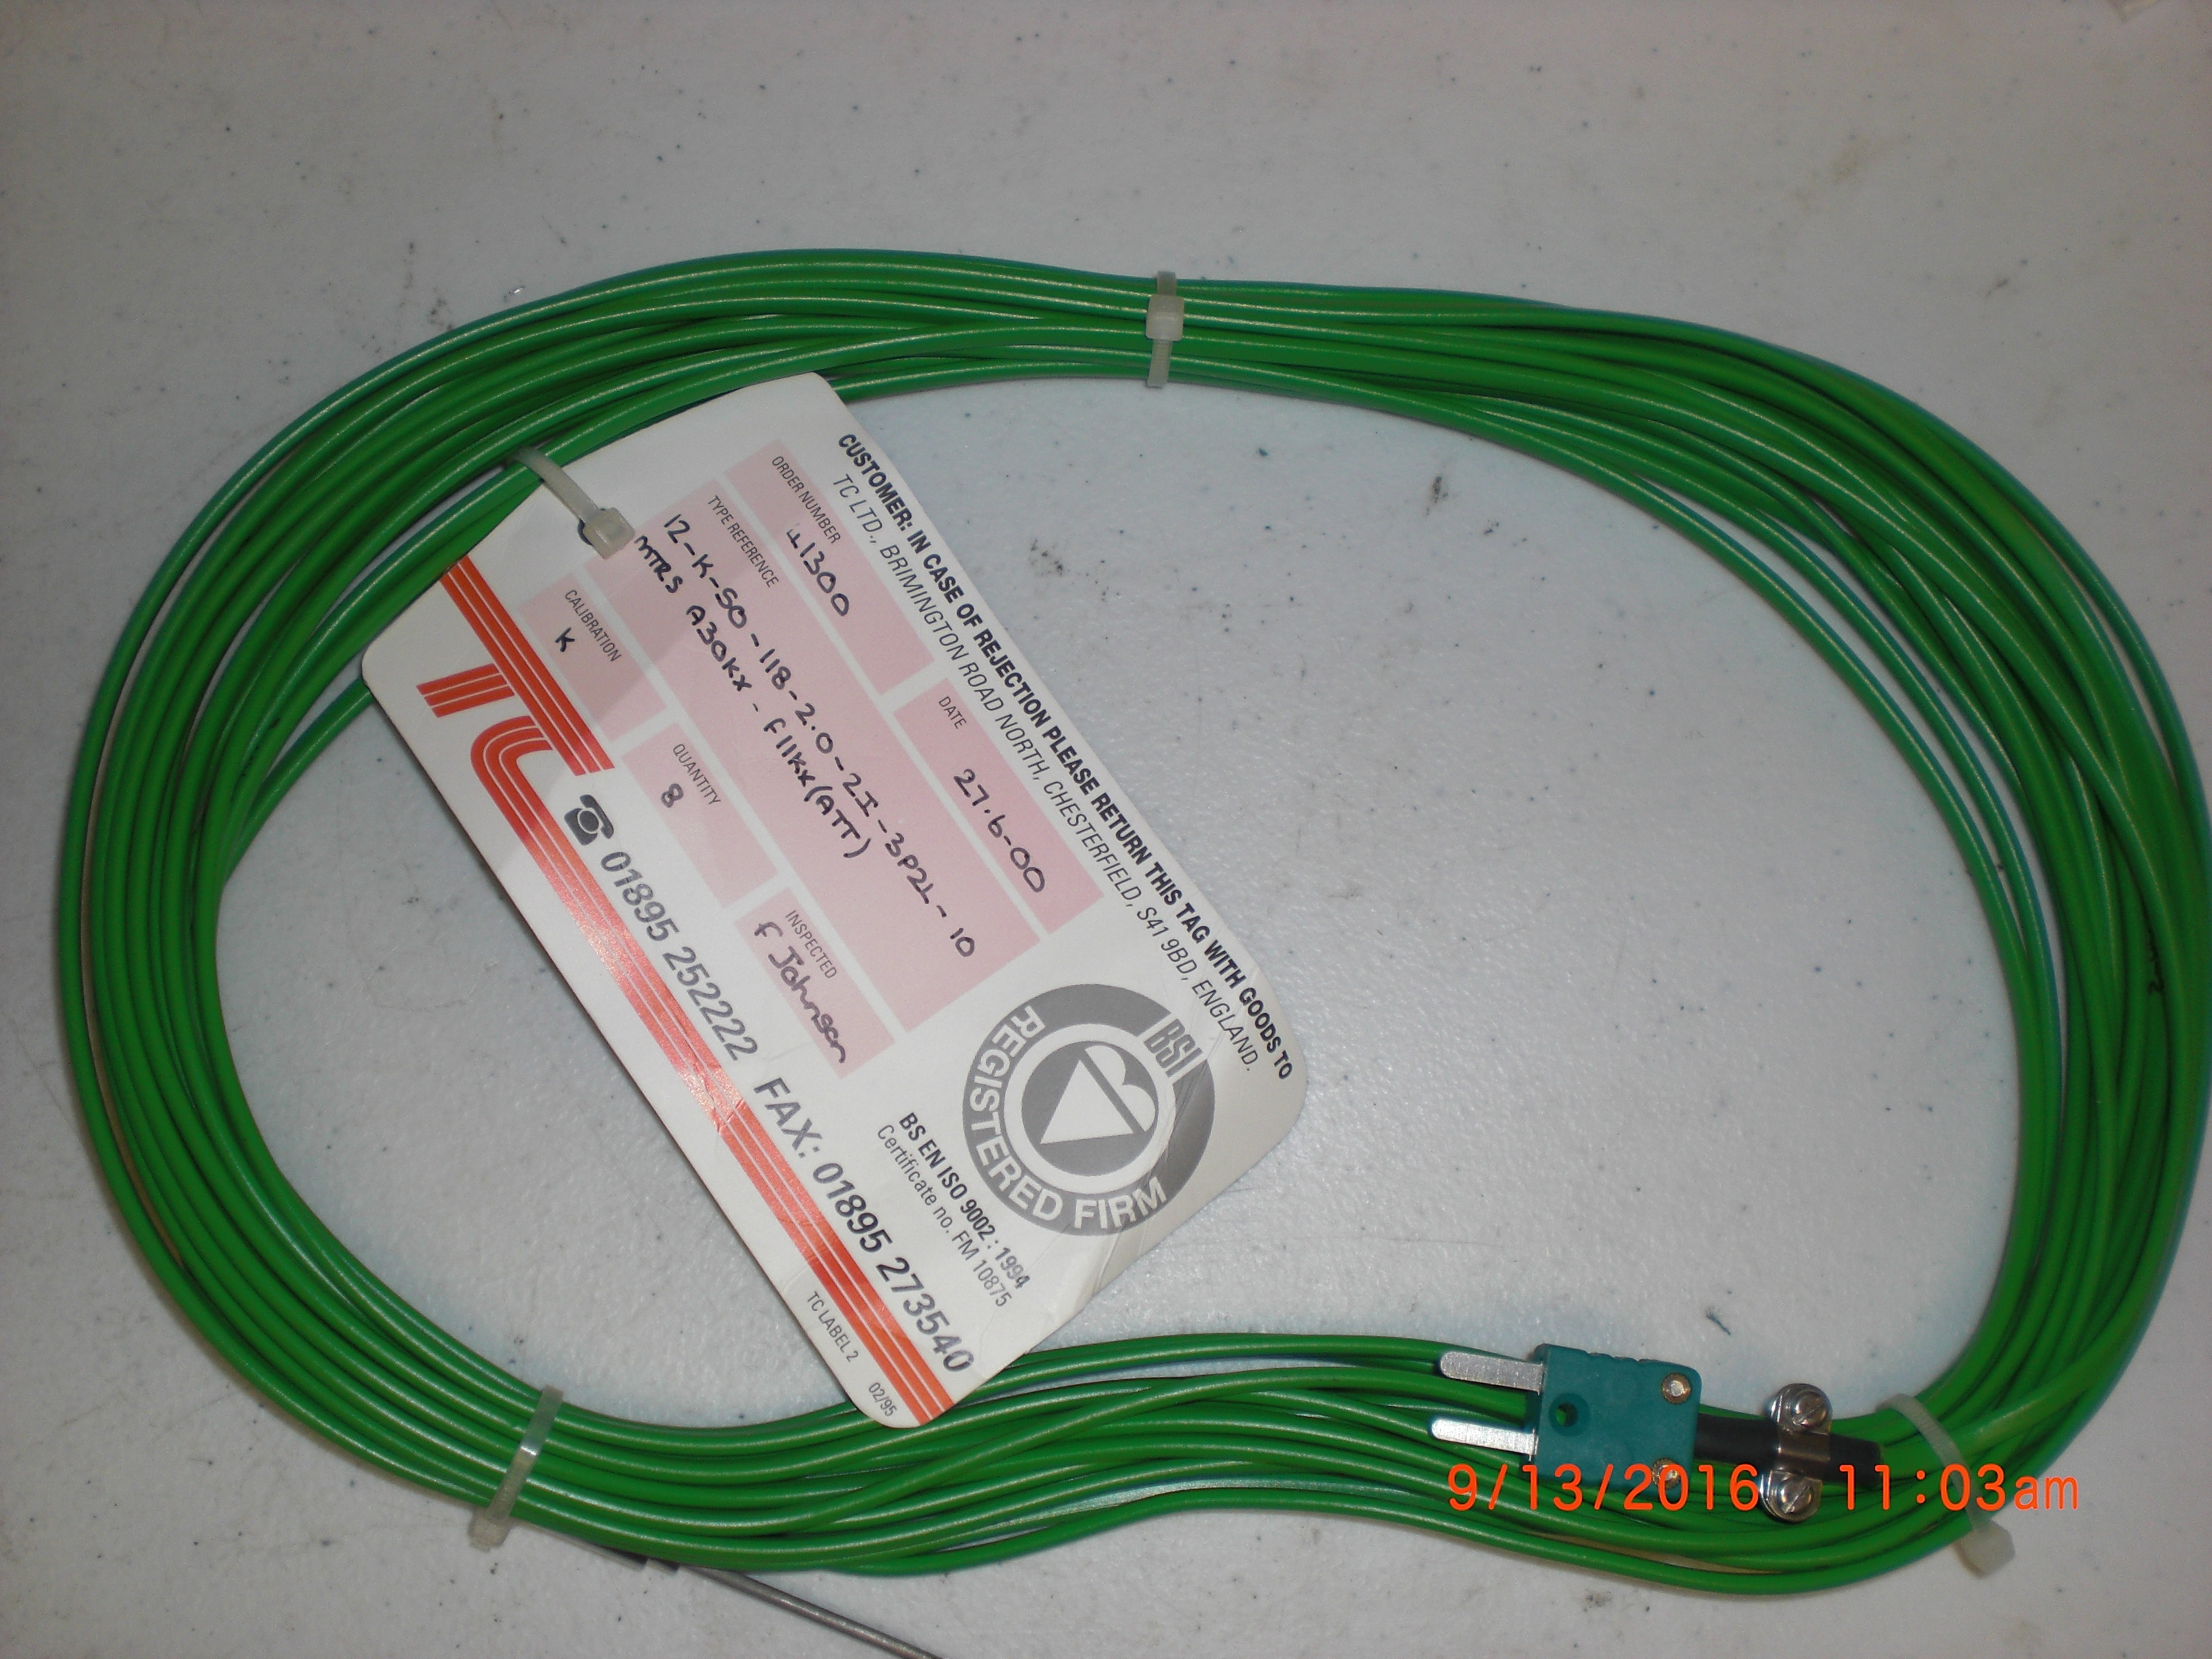 Thermo Couple (TC) Type K 12-K-SO-118-2.0-2I-3P2L-10MTRS A30KX(ATT) TC Ldt 41300 Aviza 5781885